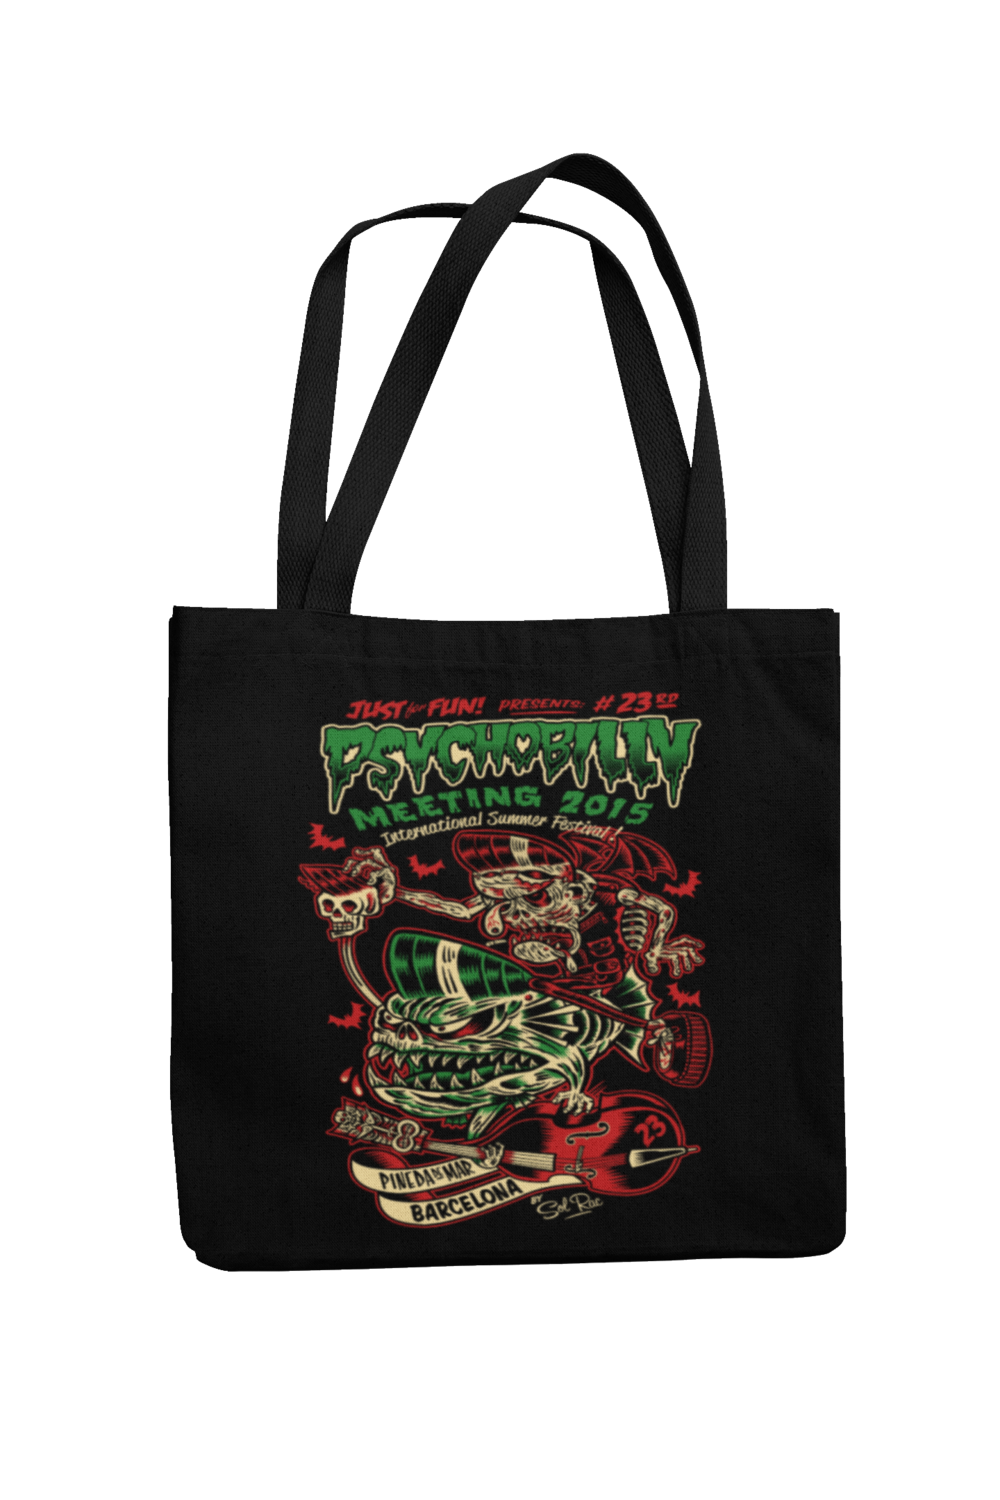 Cotton Bag Psychobilly meeting design by Solrac 2015